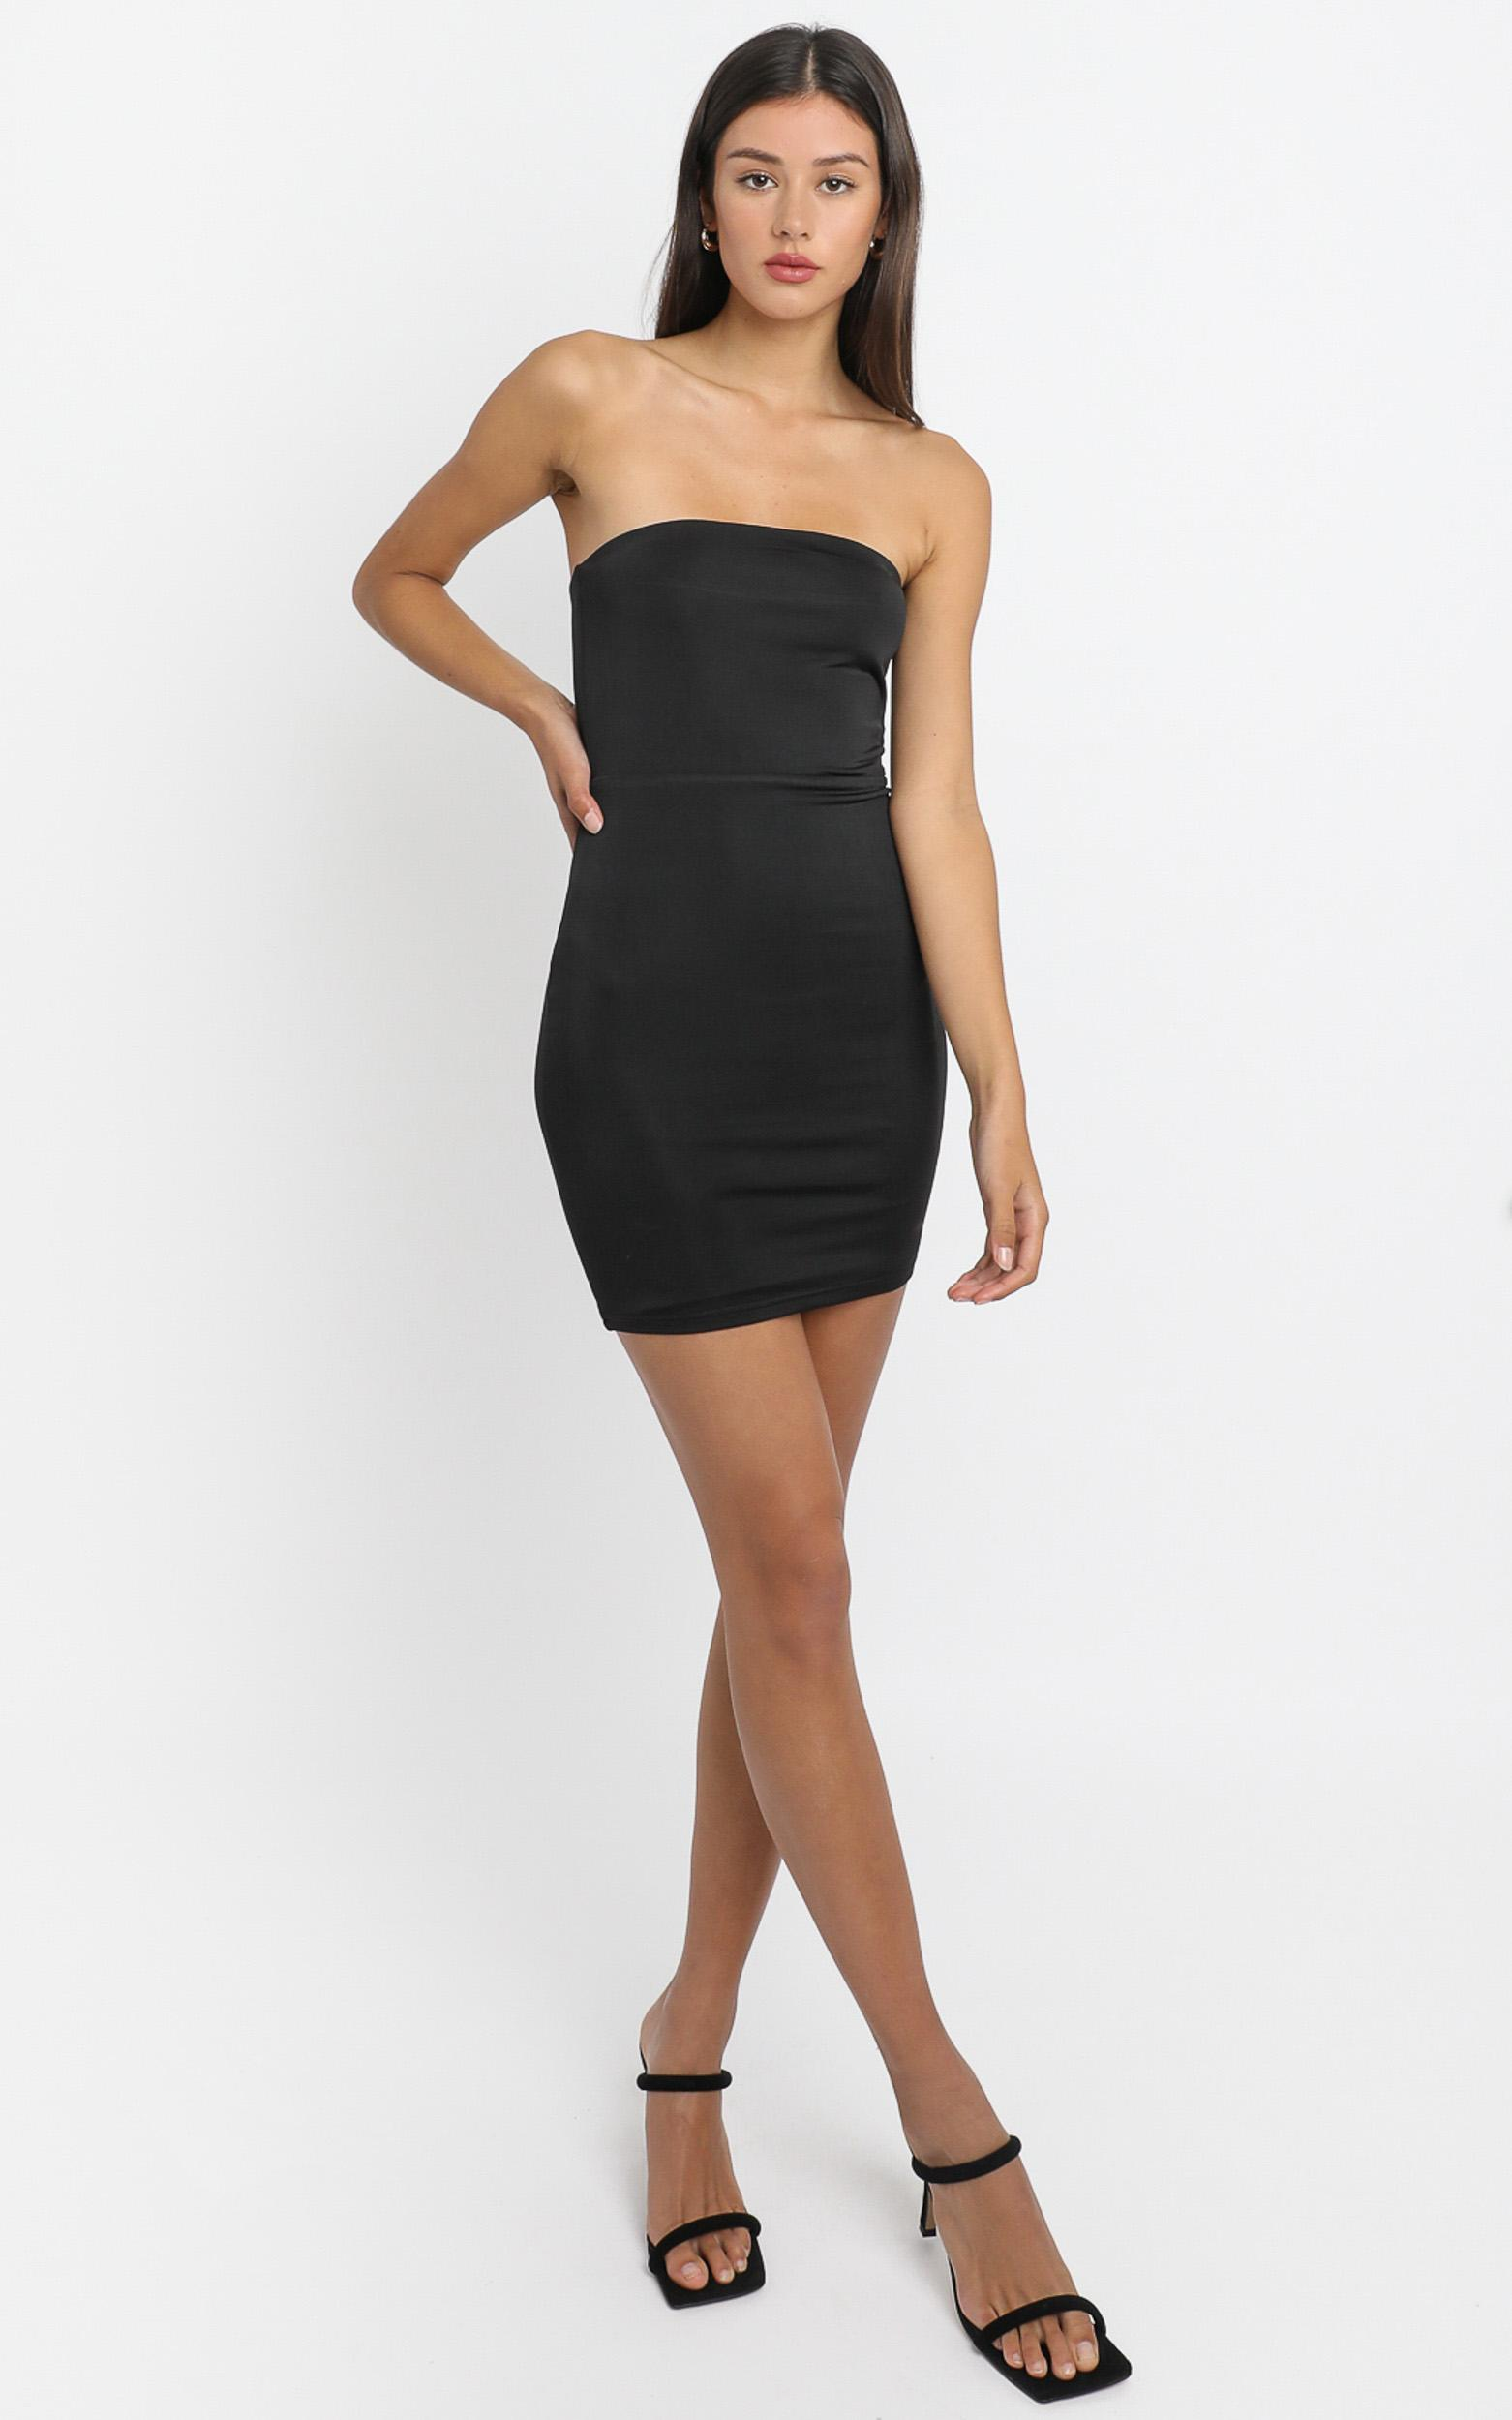 Perfect Decision Dress In black - 6 (XS), BLK1, hi-res image number null